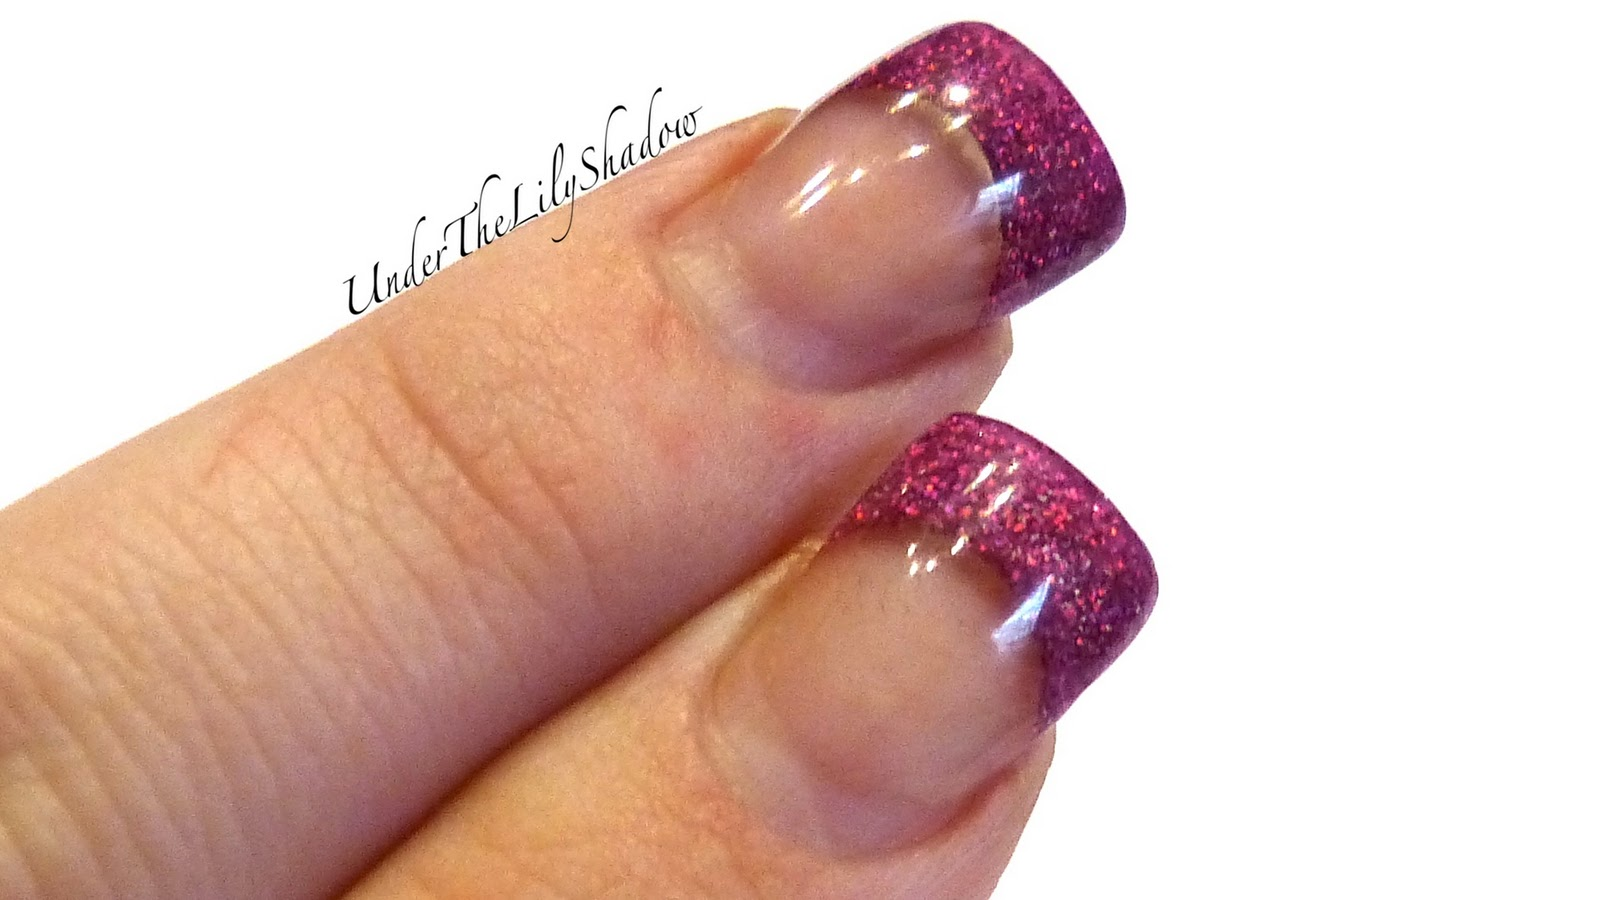 Underthelilyshadow when do your nails need an infill almost 4 weeks solutioingenieria Choice Image